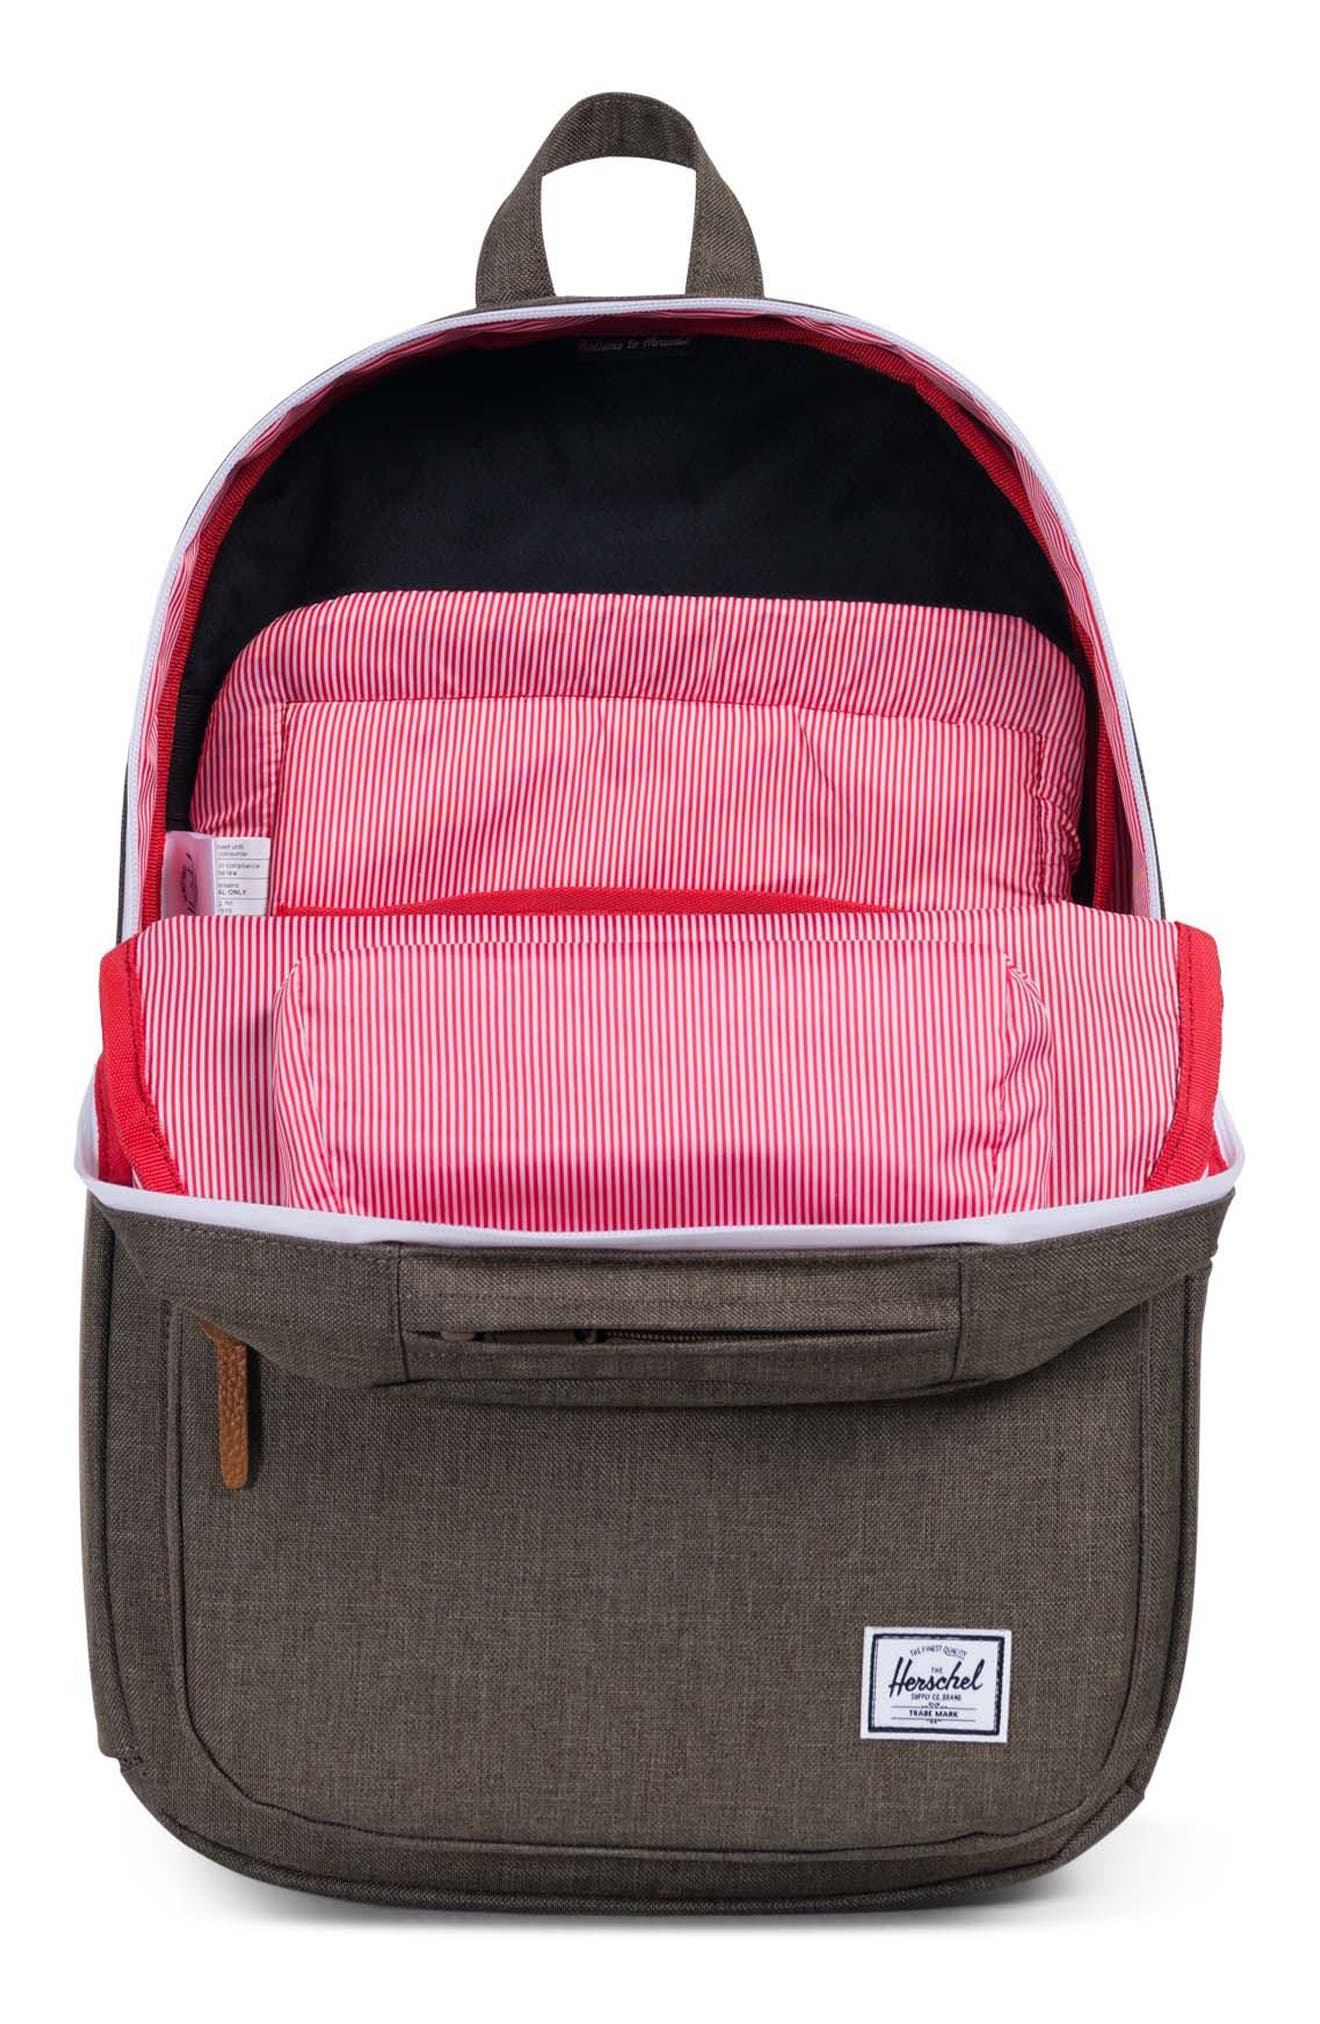 Harrison Backpack,                             Alternate thumbnail 2, color,                             218